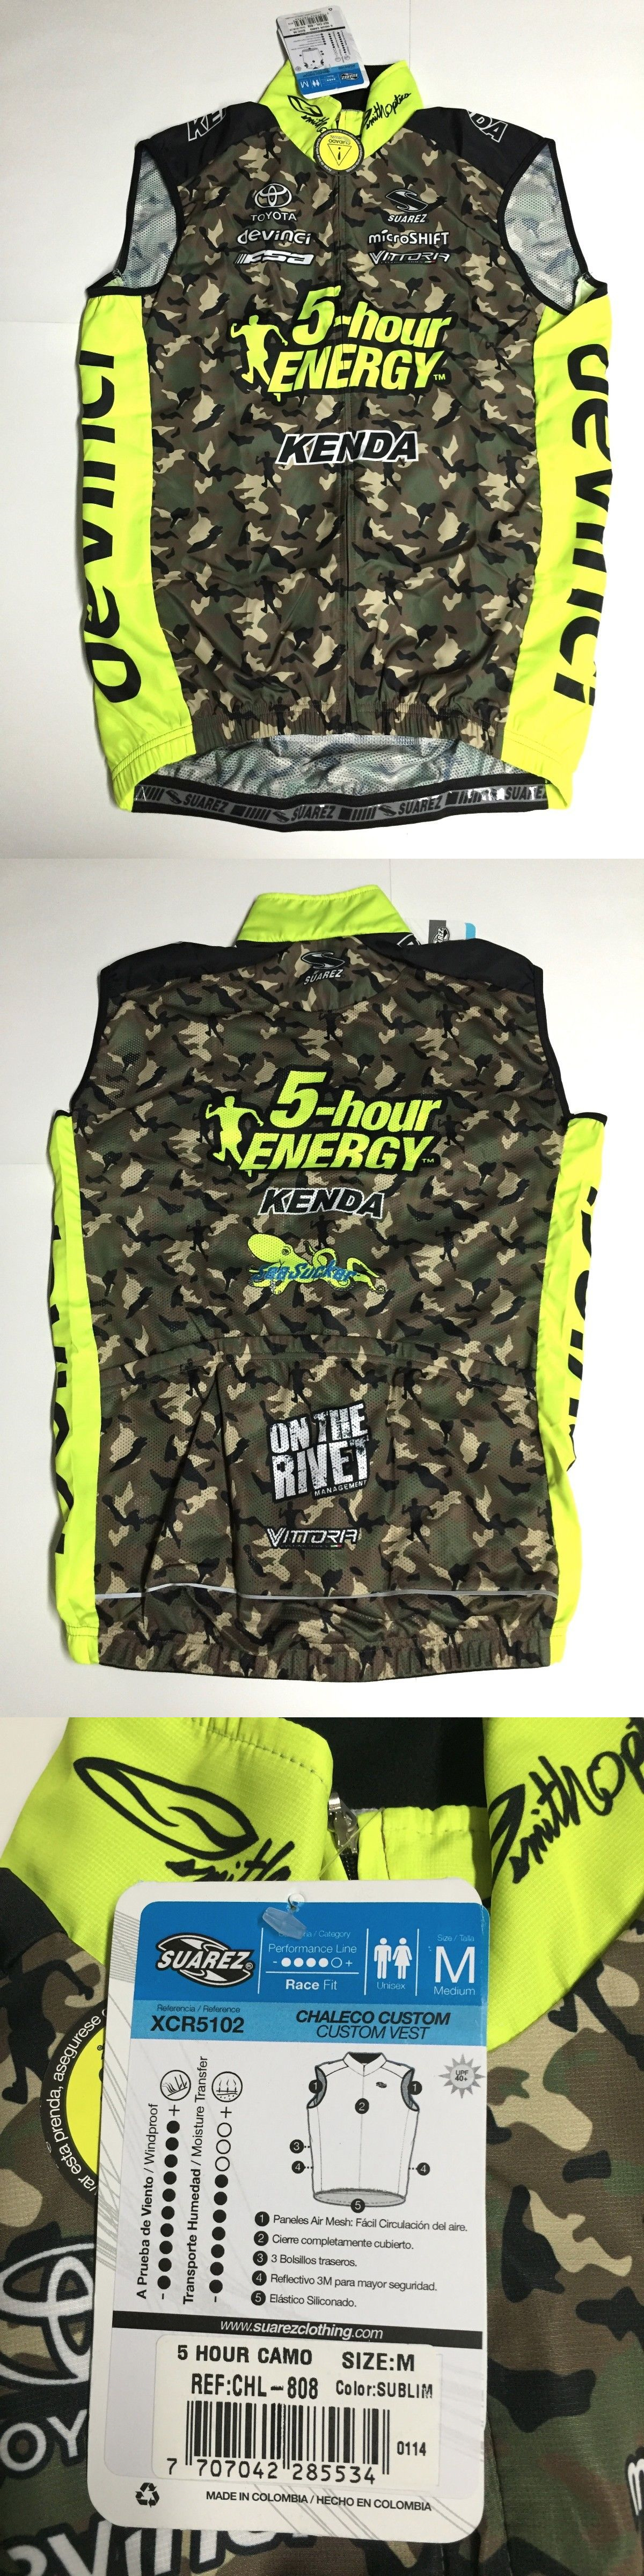 Vests 177856: Suarez Size Medium Wind Light Weight Cycling Vest Full Zip - New - 5-Hour Camo -> BUY IT NOW ONLY: $34.99 on eBay!